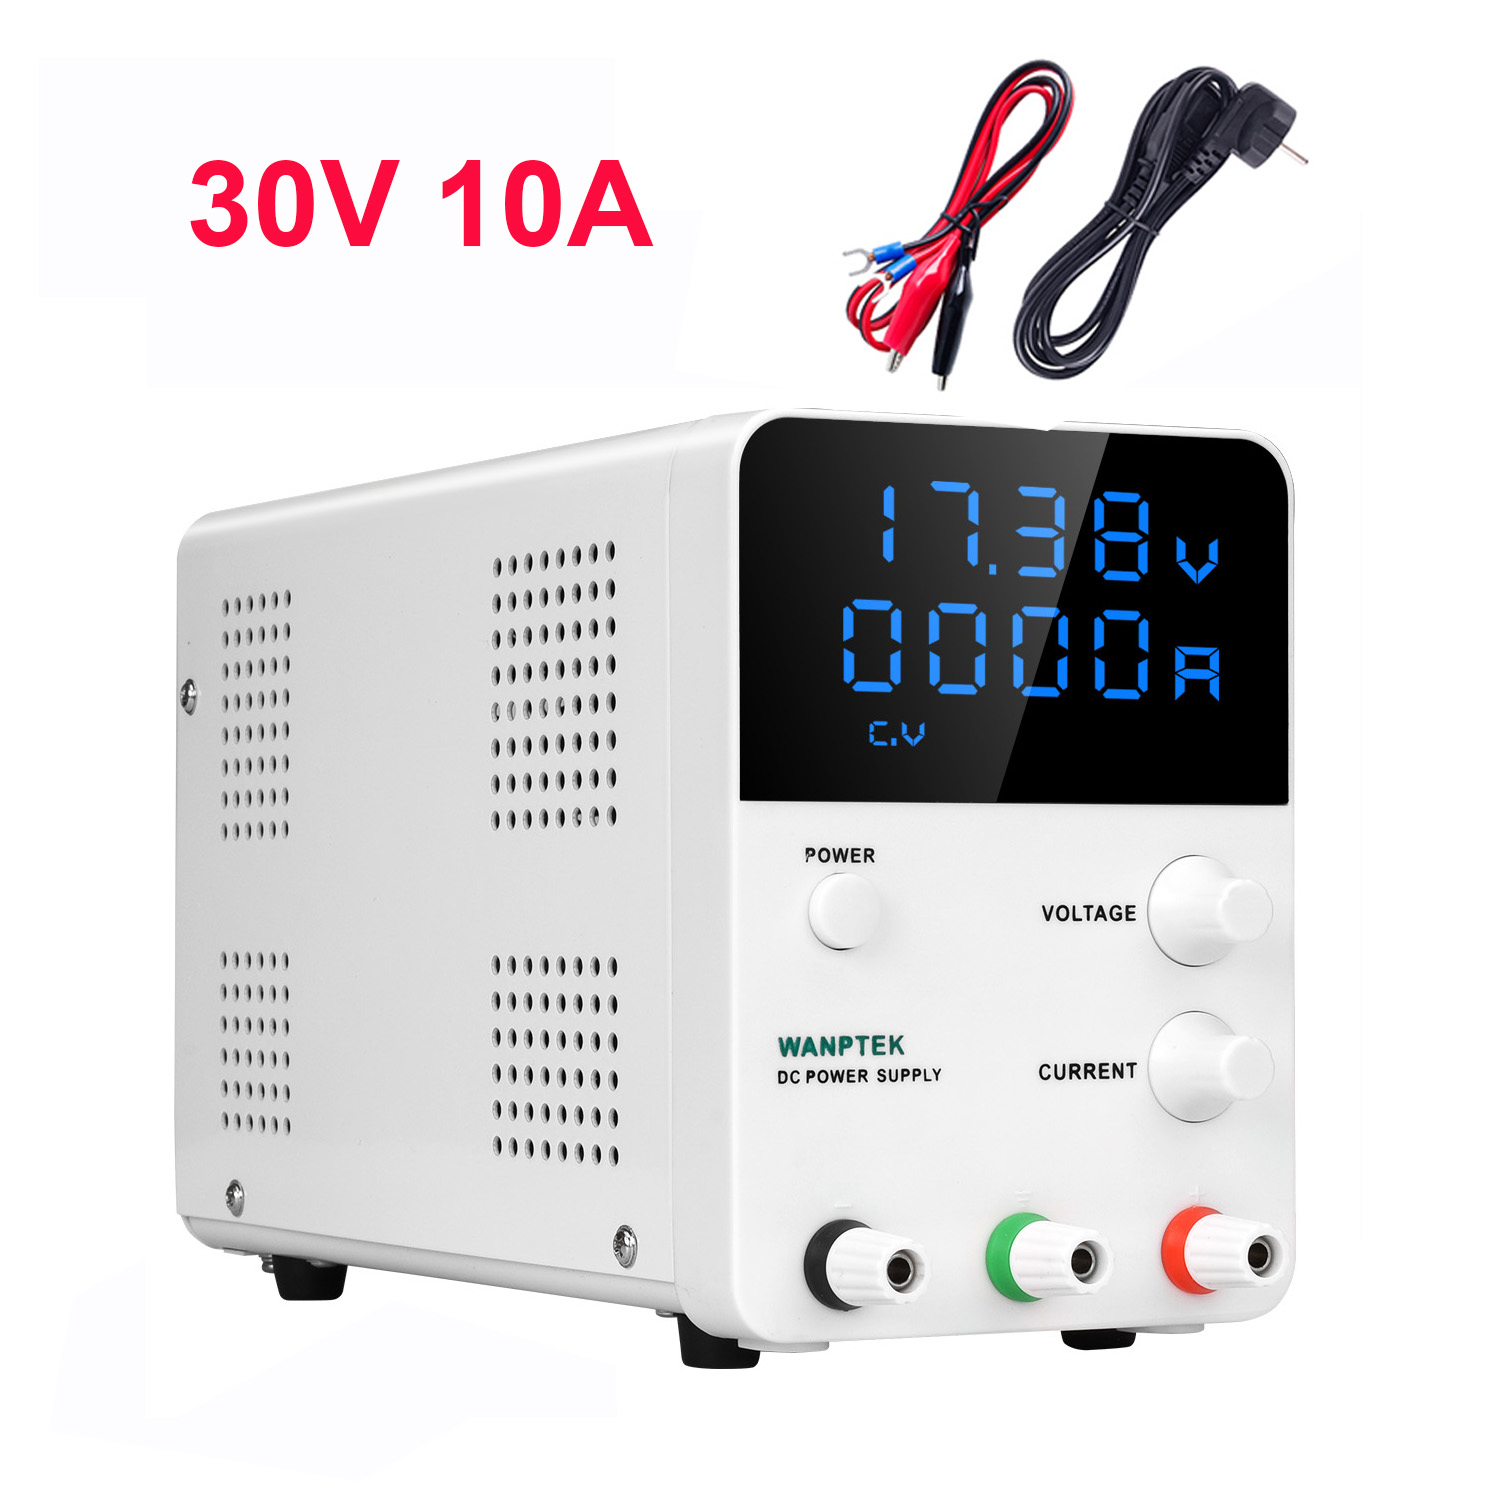 Adjustable Power Supply 30V 10A Unit Bench Source Universal Switching Lab Power Supplies Shipping From Russia